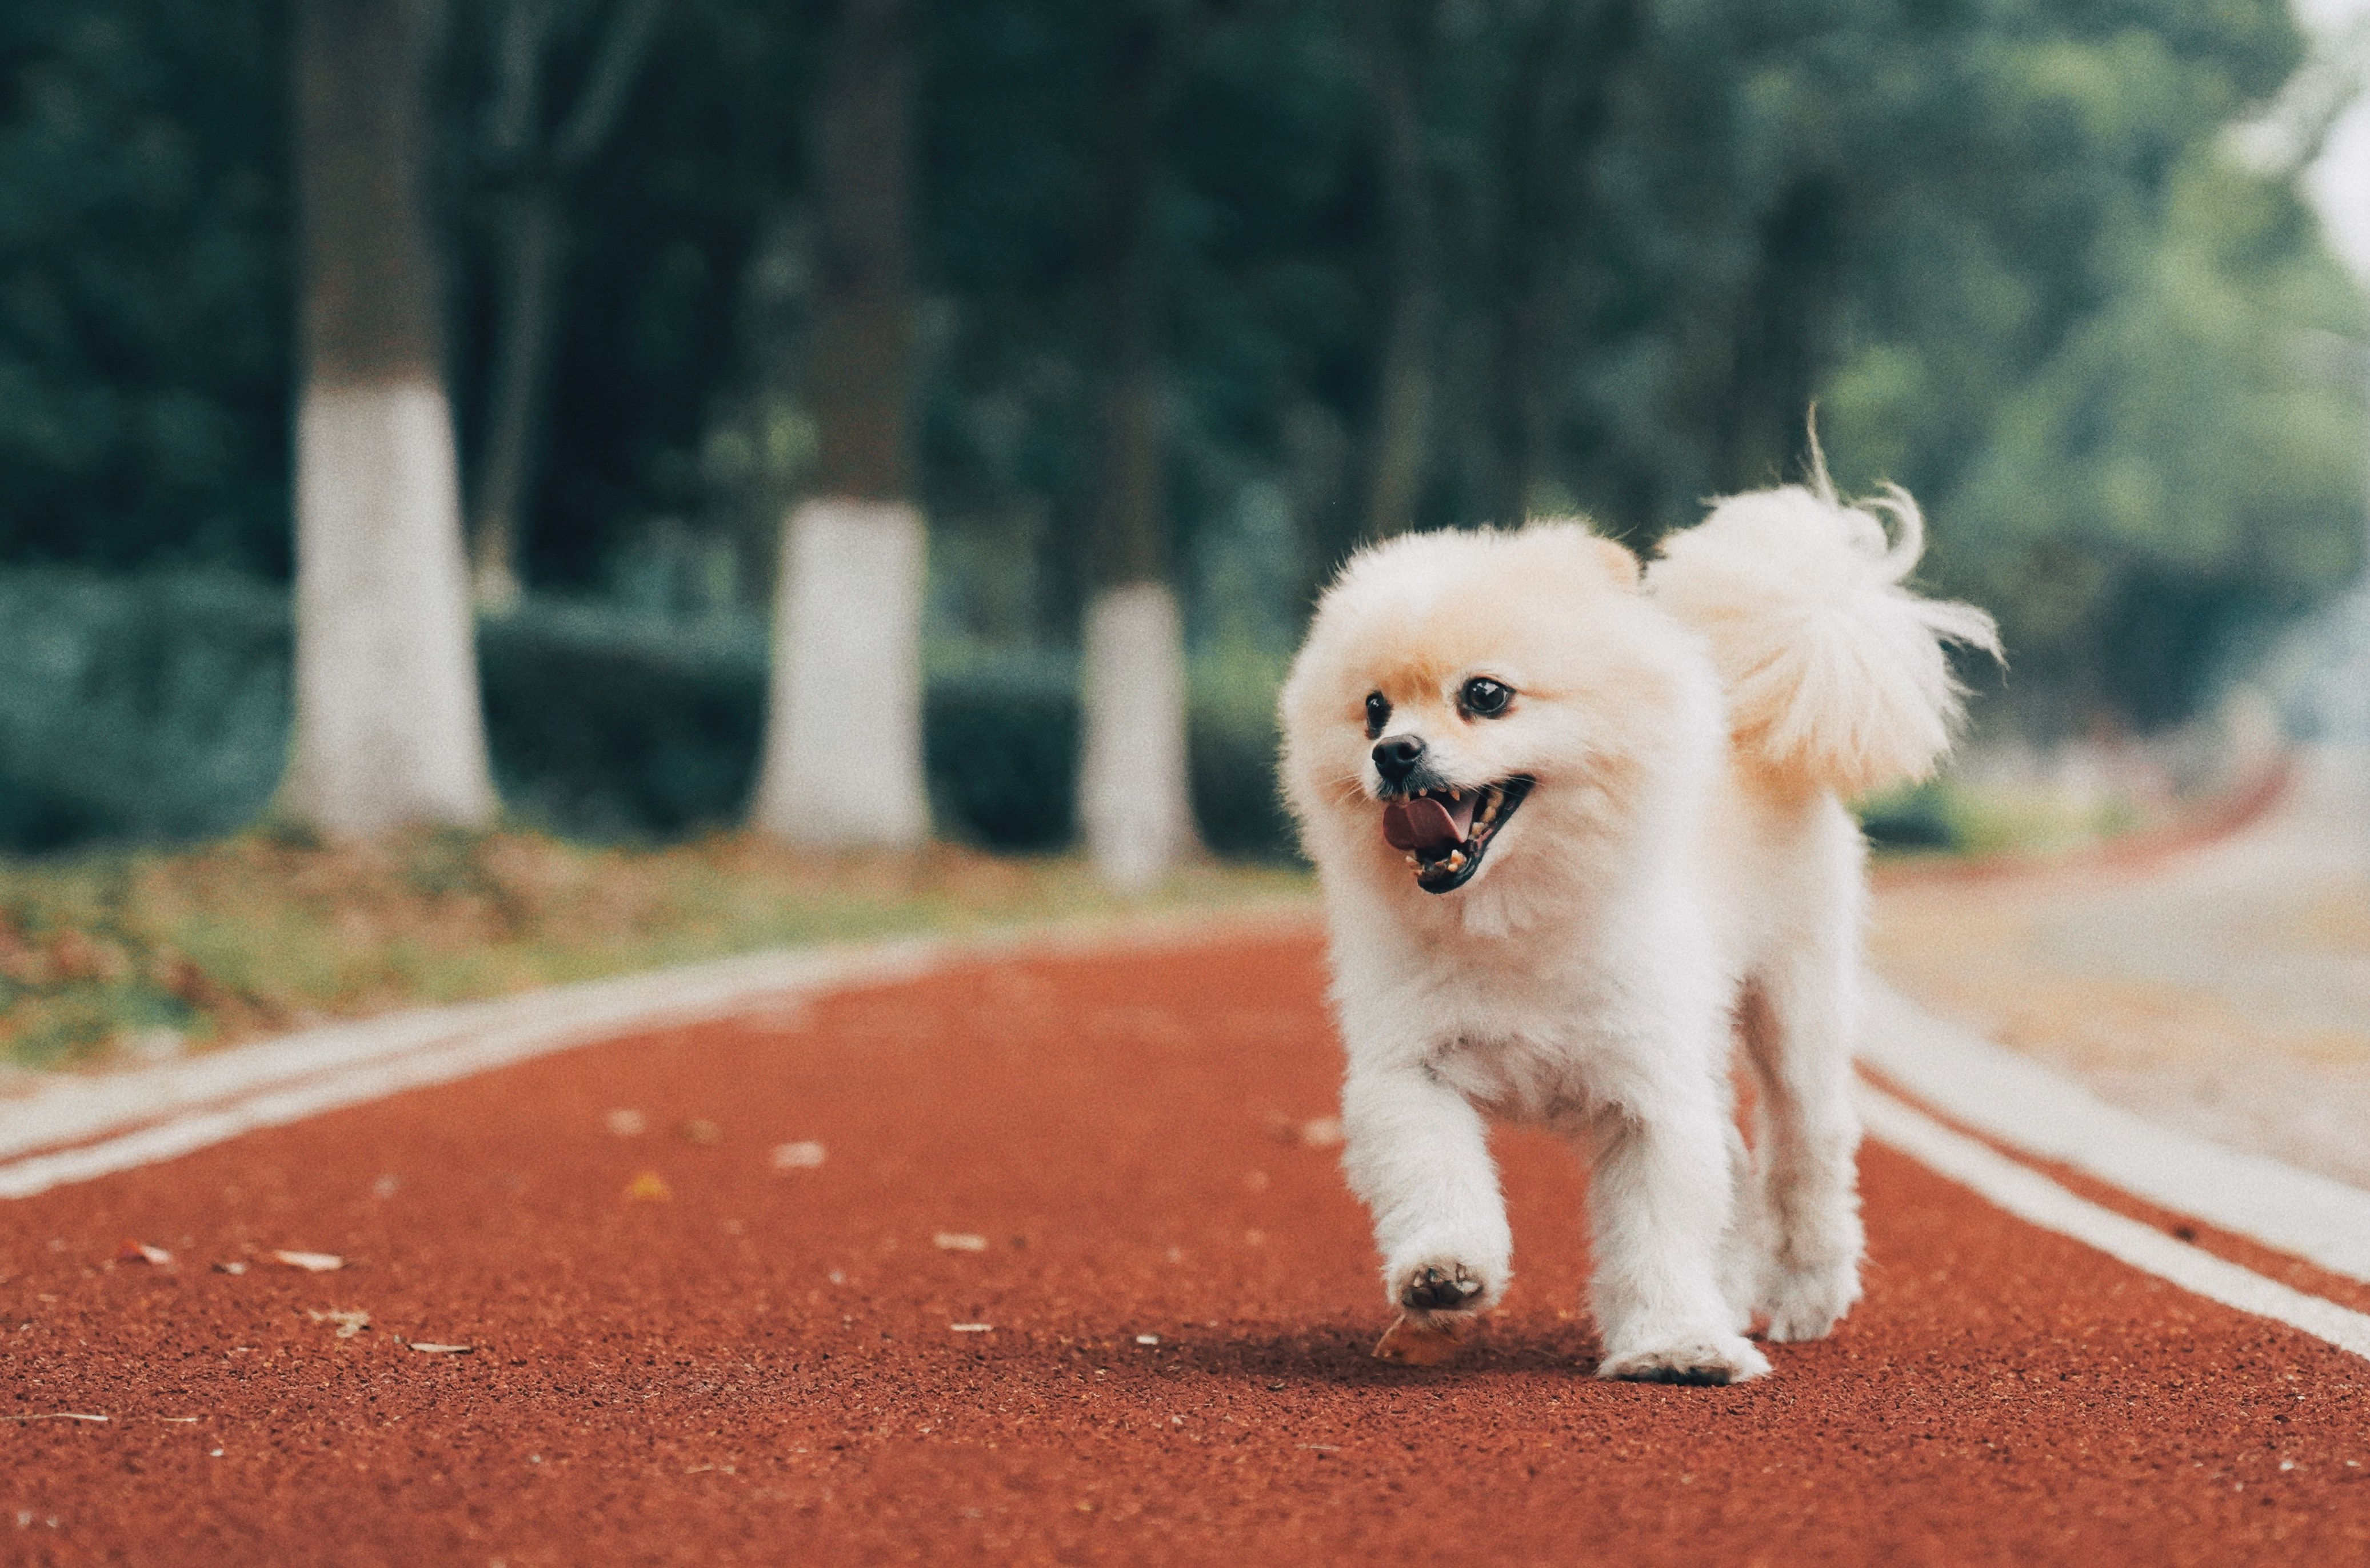 White Dog On Road With Images Small Dog Pictures White Dog Breeds White Dogs